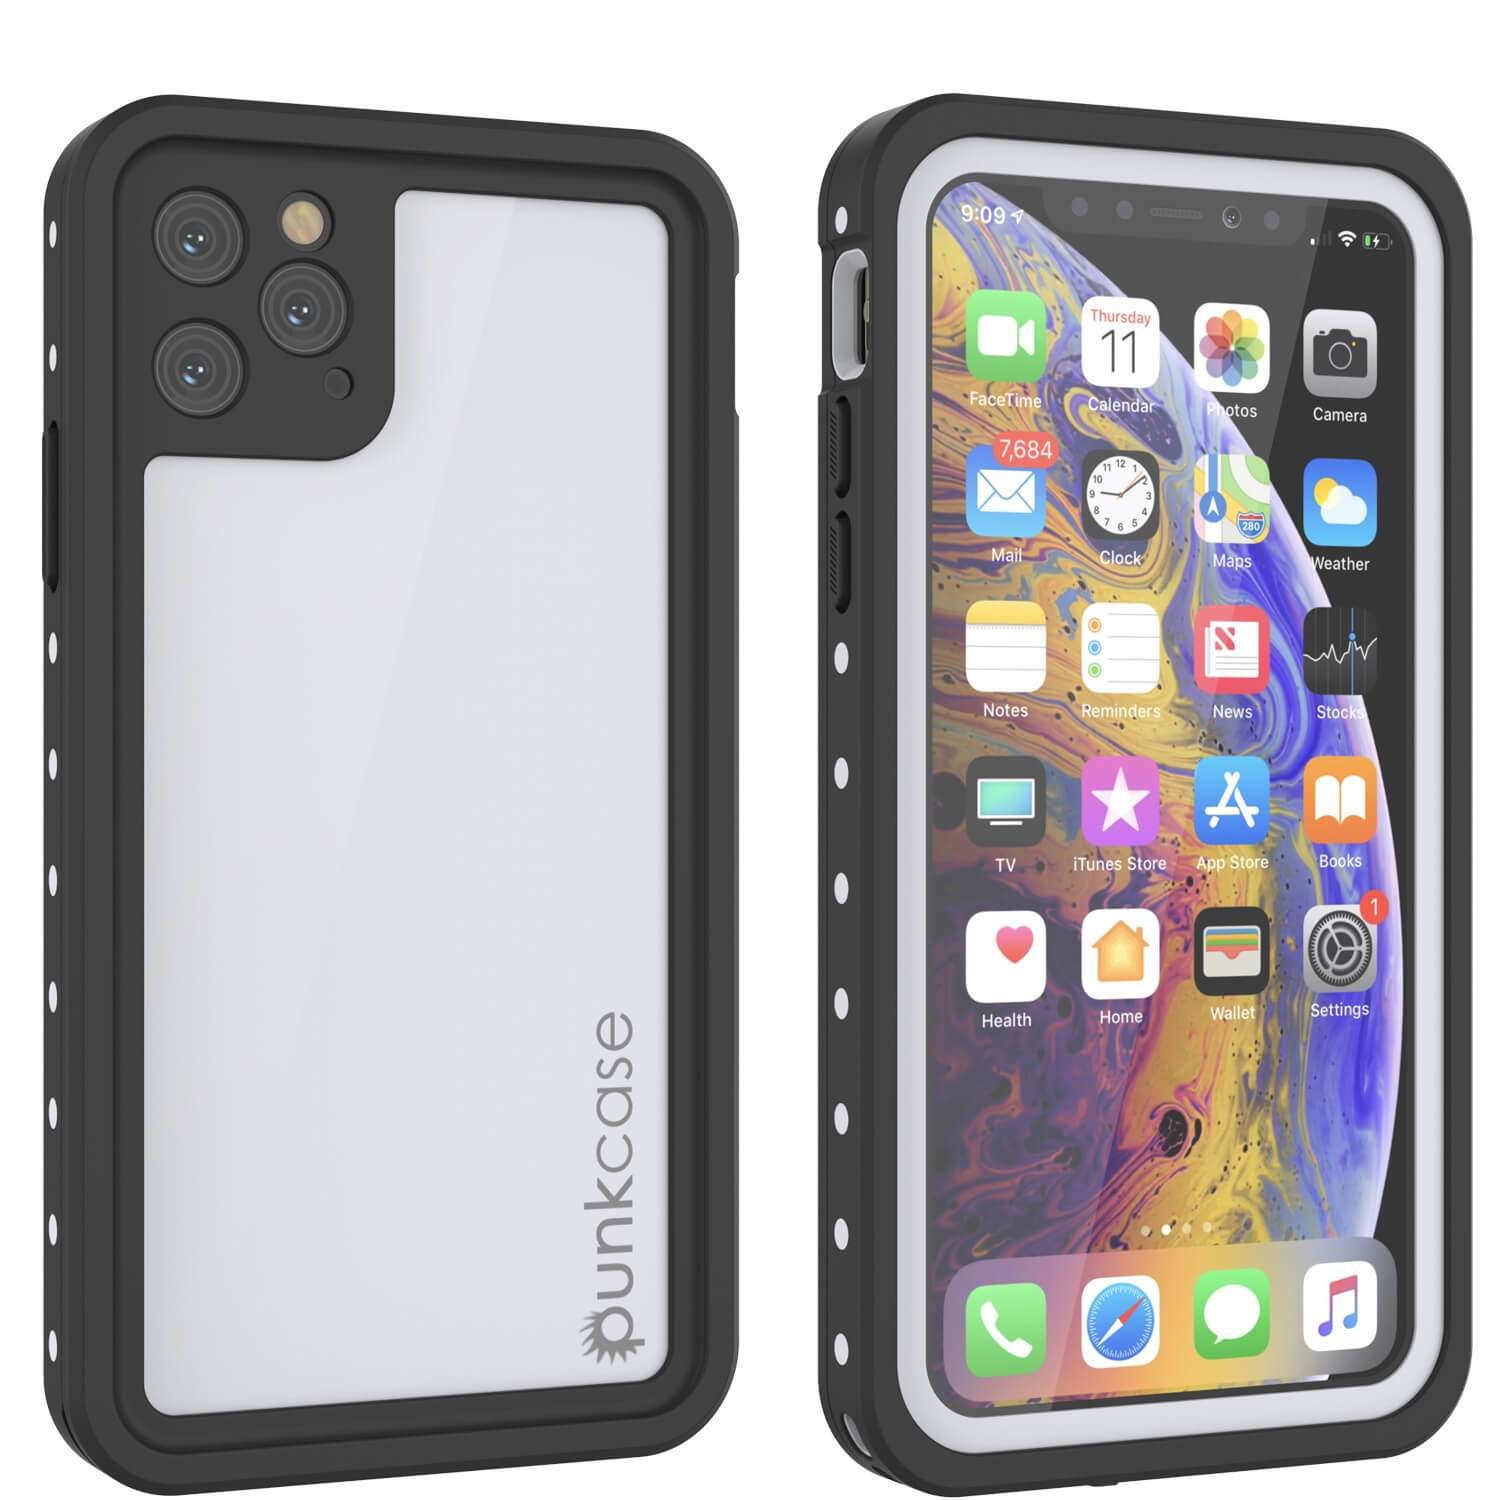 iPhone 11 Pro Waterproof IP68 Case, Punkcase [White] [StudStar Series] [Slim Fit] [Dirtproof]